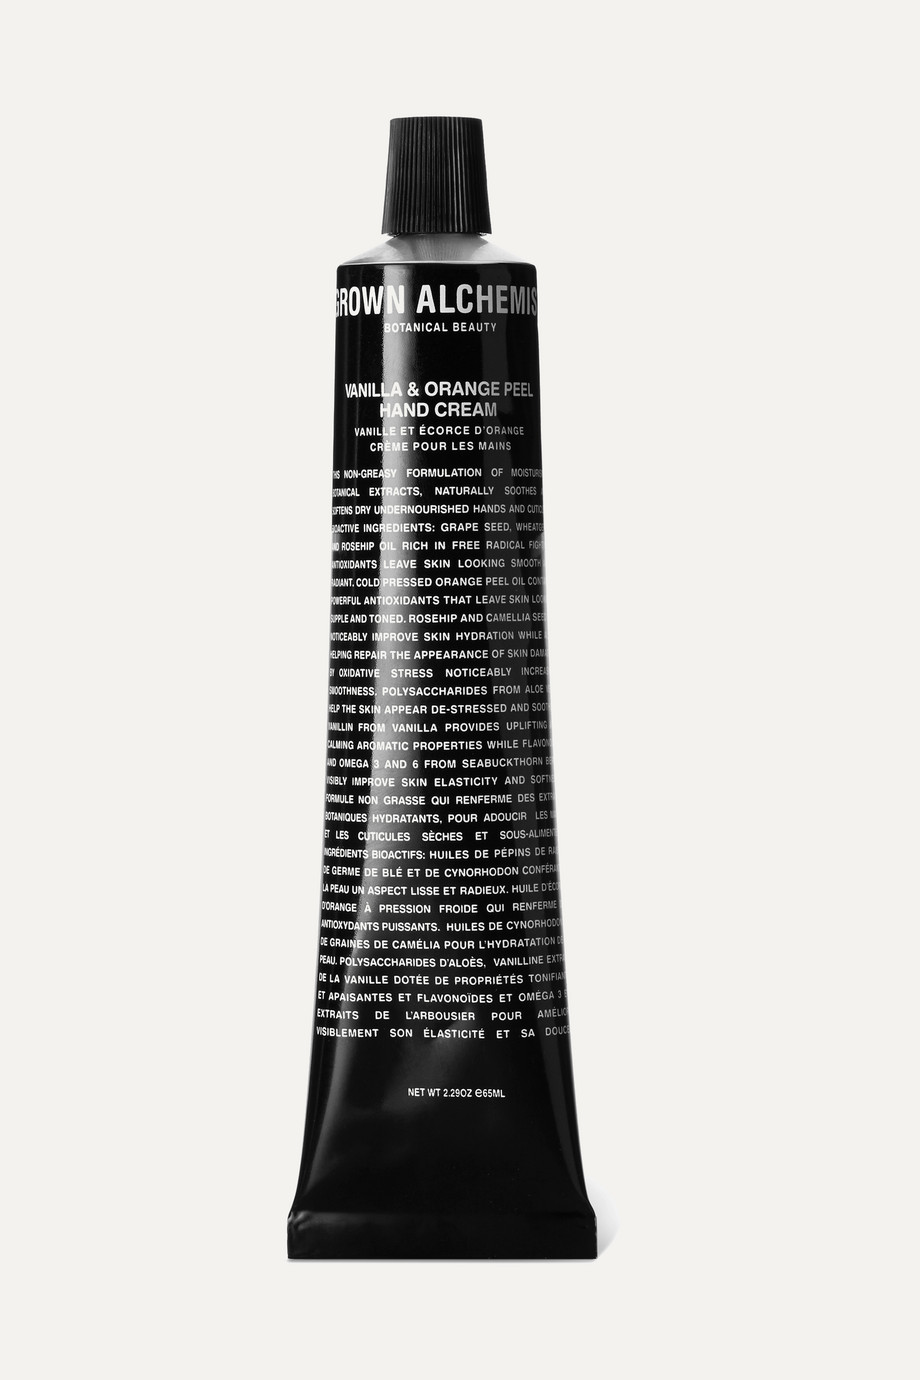 GROWN ALCHEMIST Hand Cream, 65ml